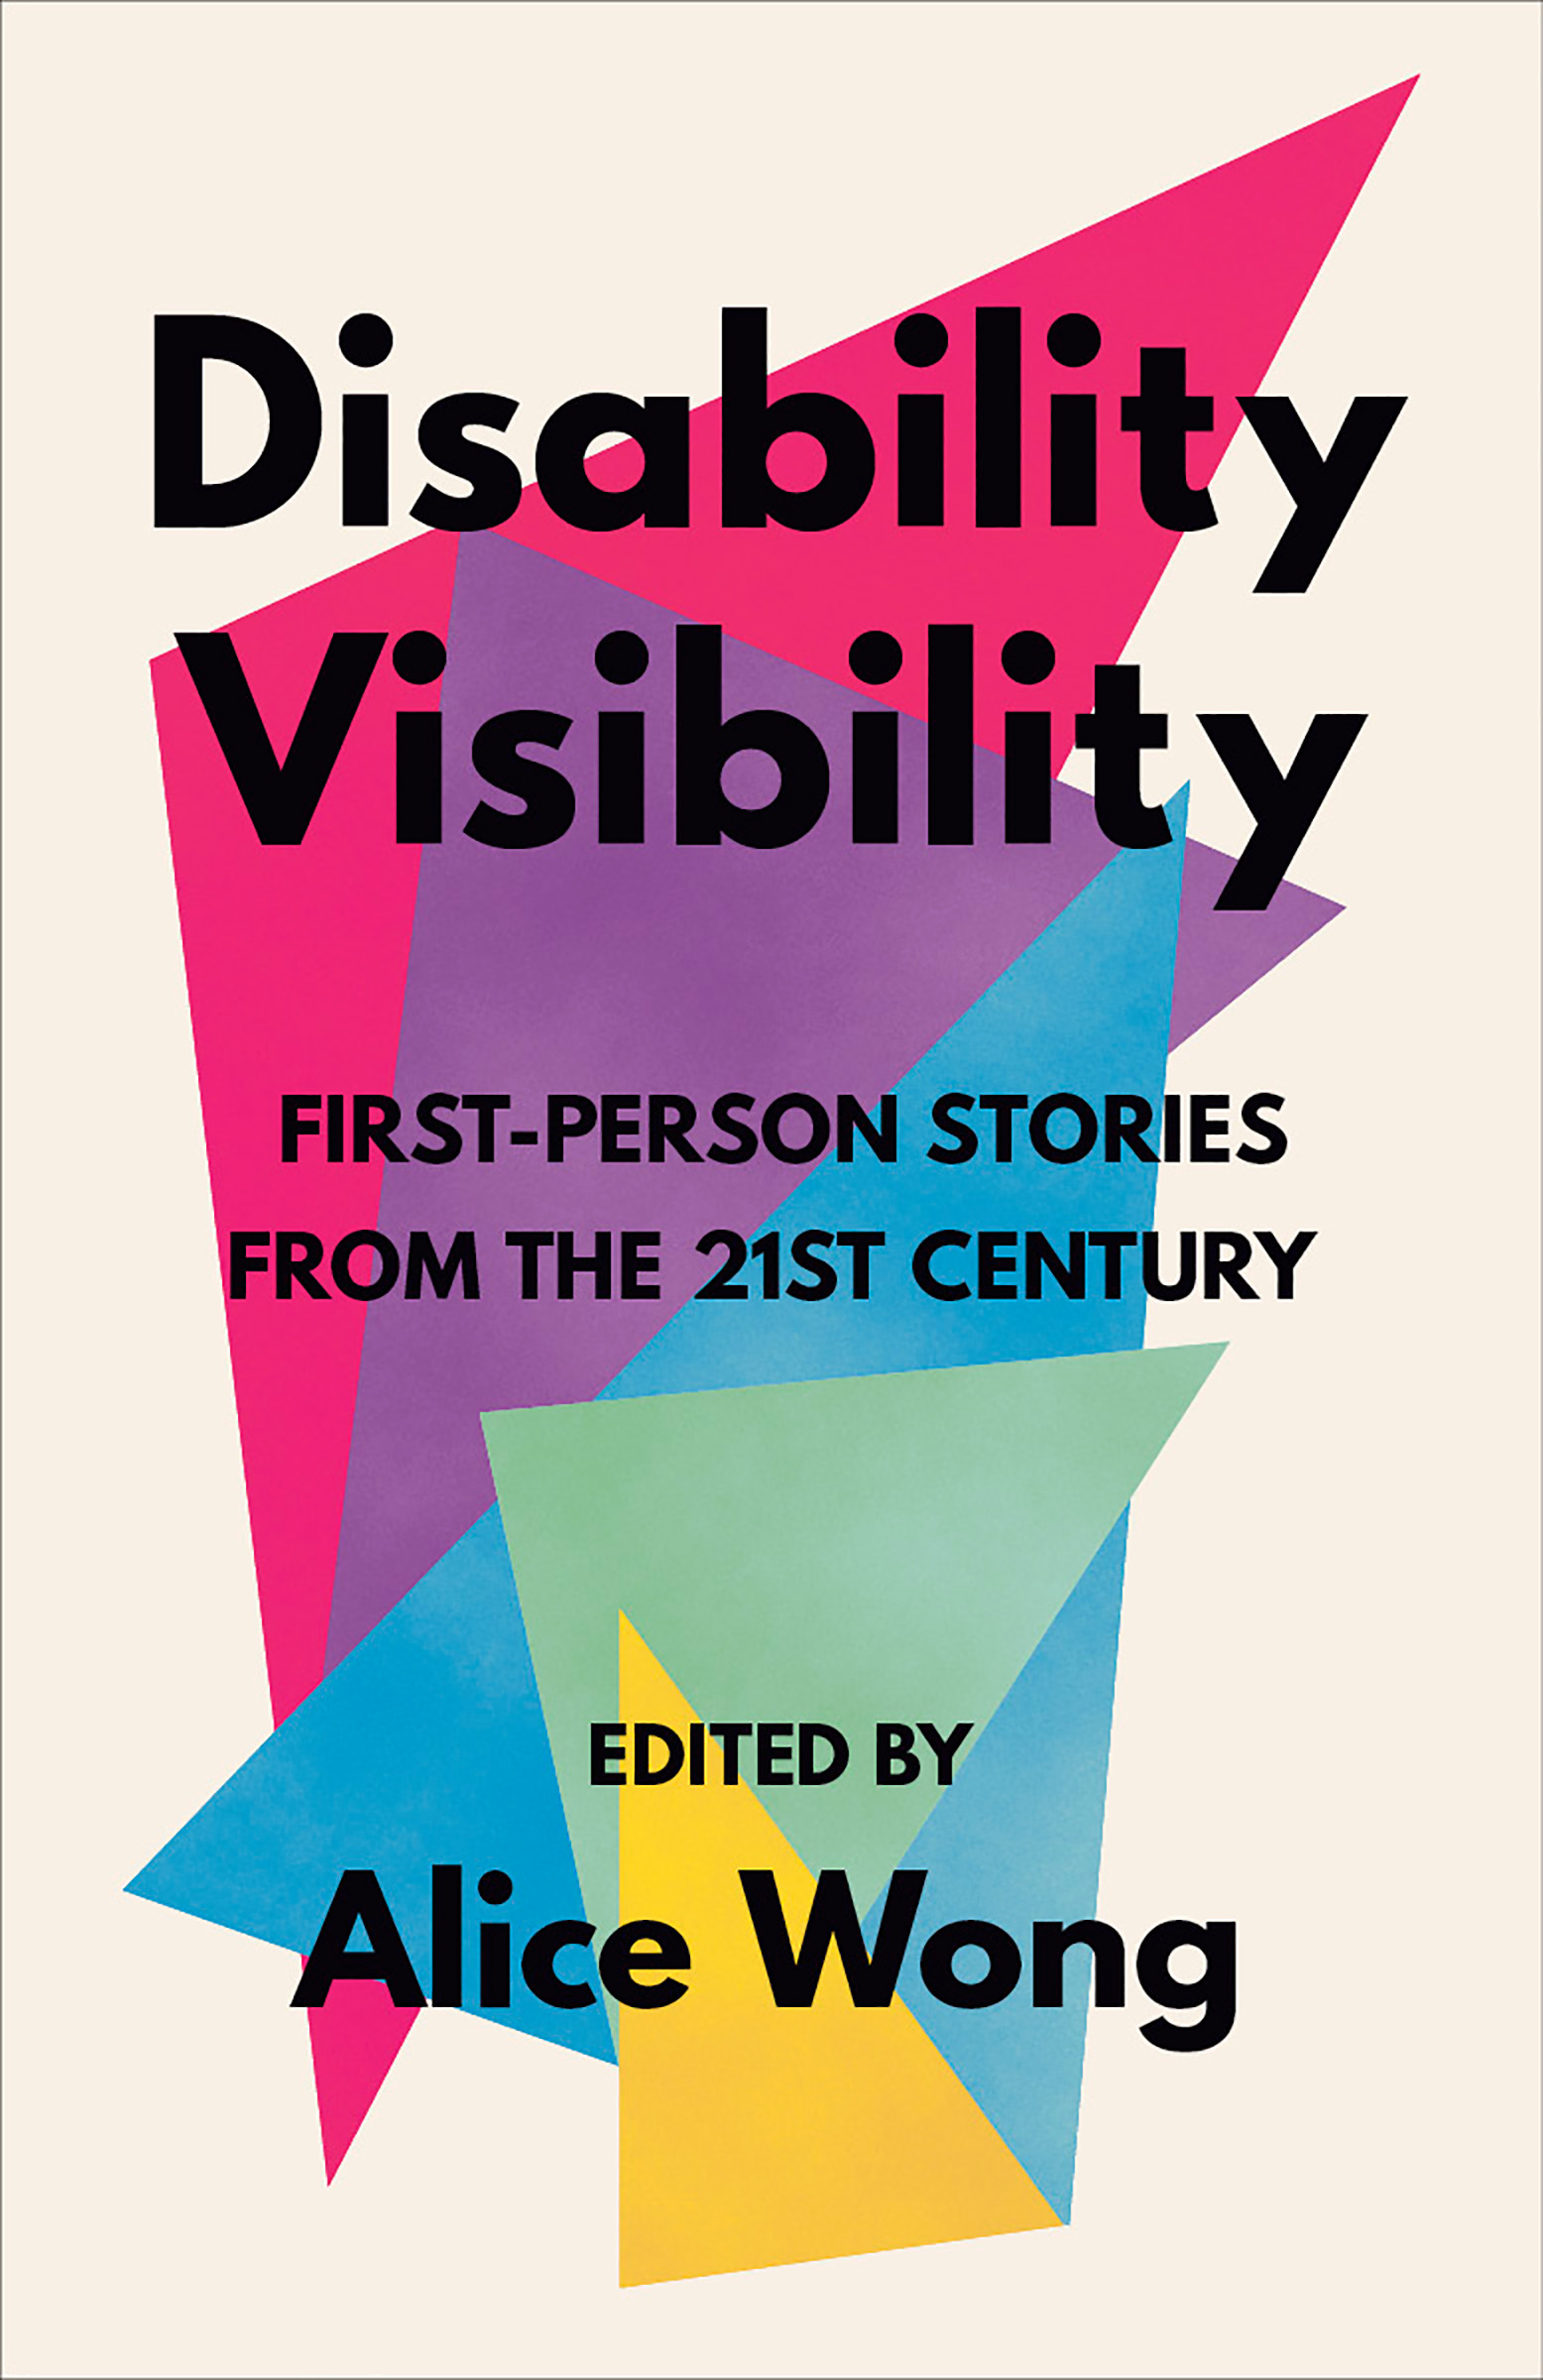 Disability Visibility (2020, Vintage)